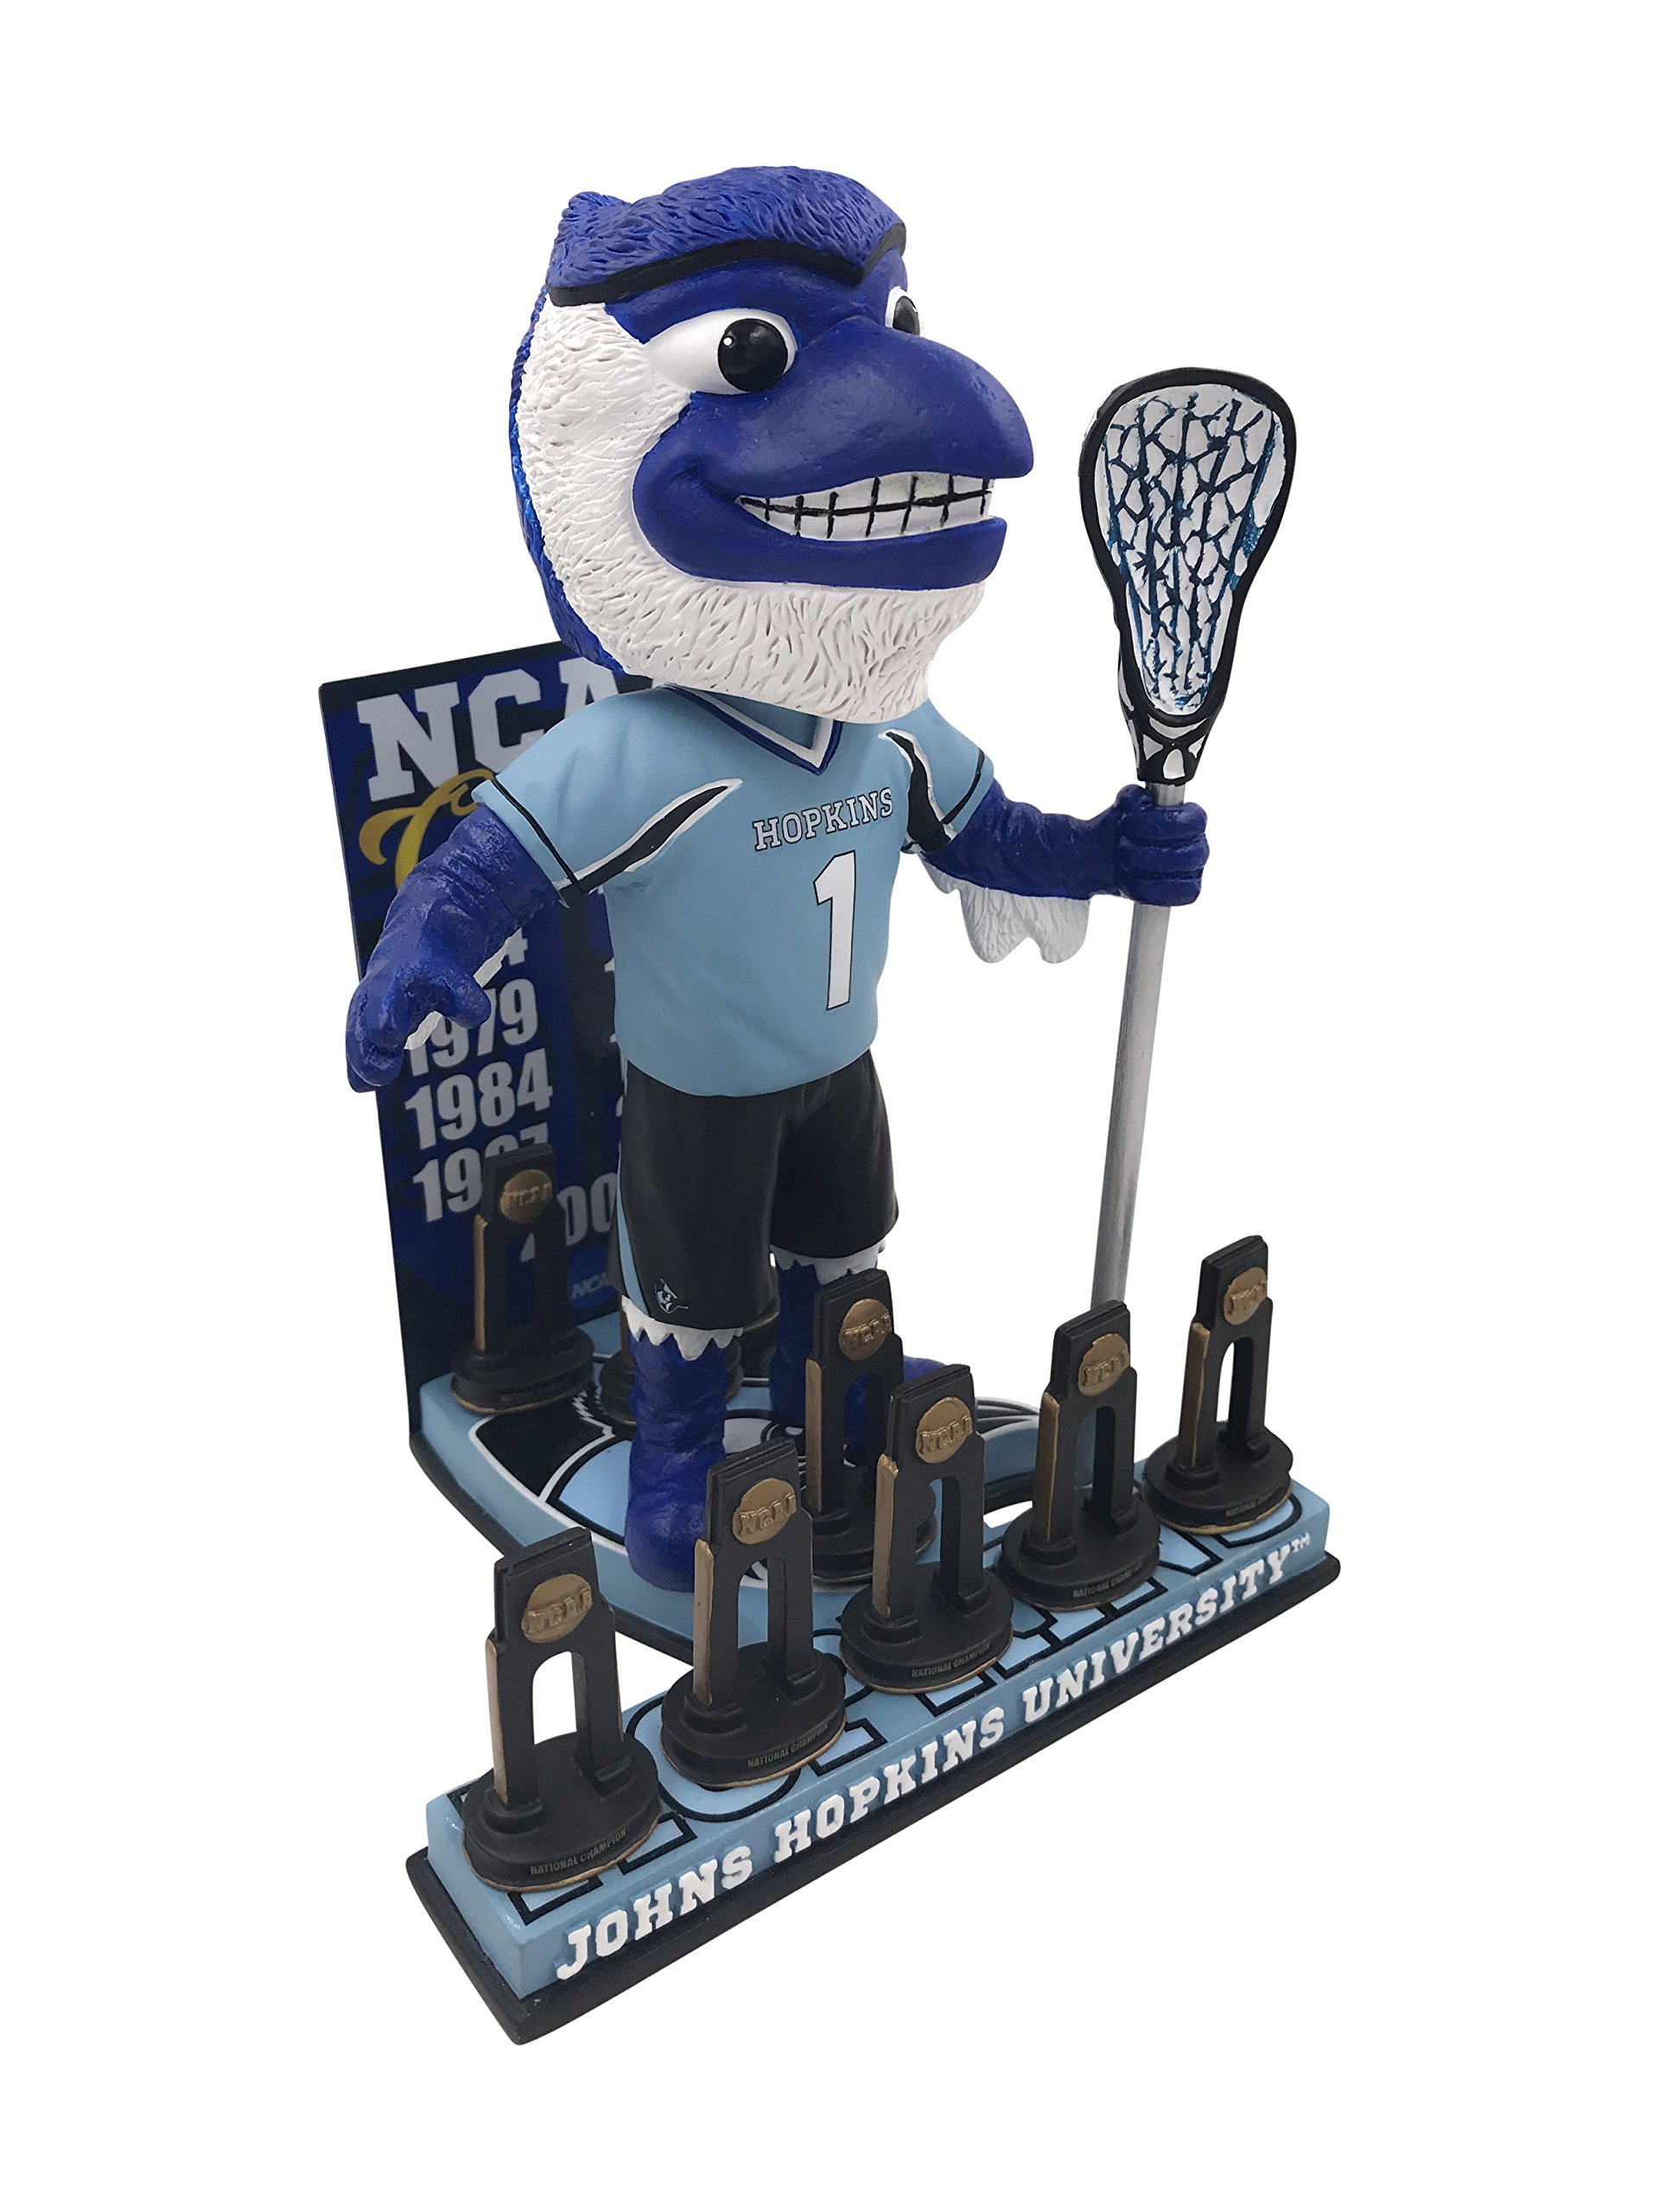 Blue Jay Johns Hopkins University Men's Lacrosse National Champions Bobblehead by Forever Collectibles (Image #2)